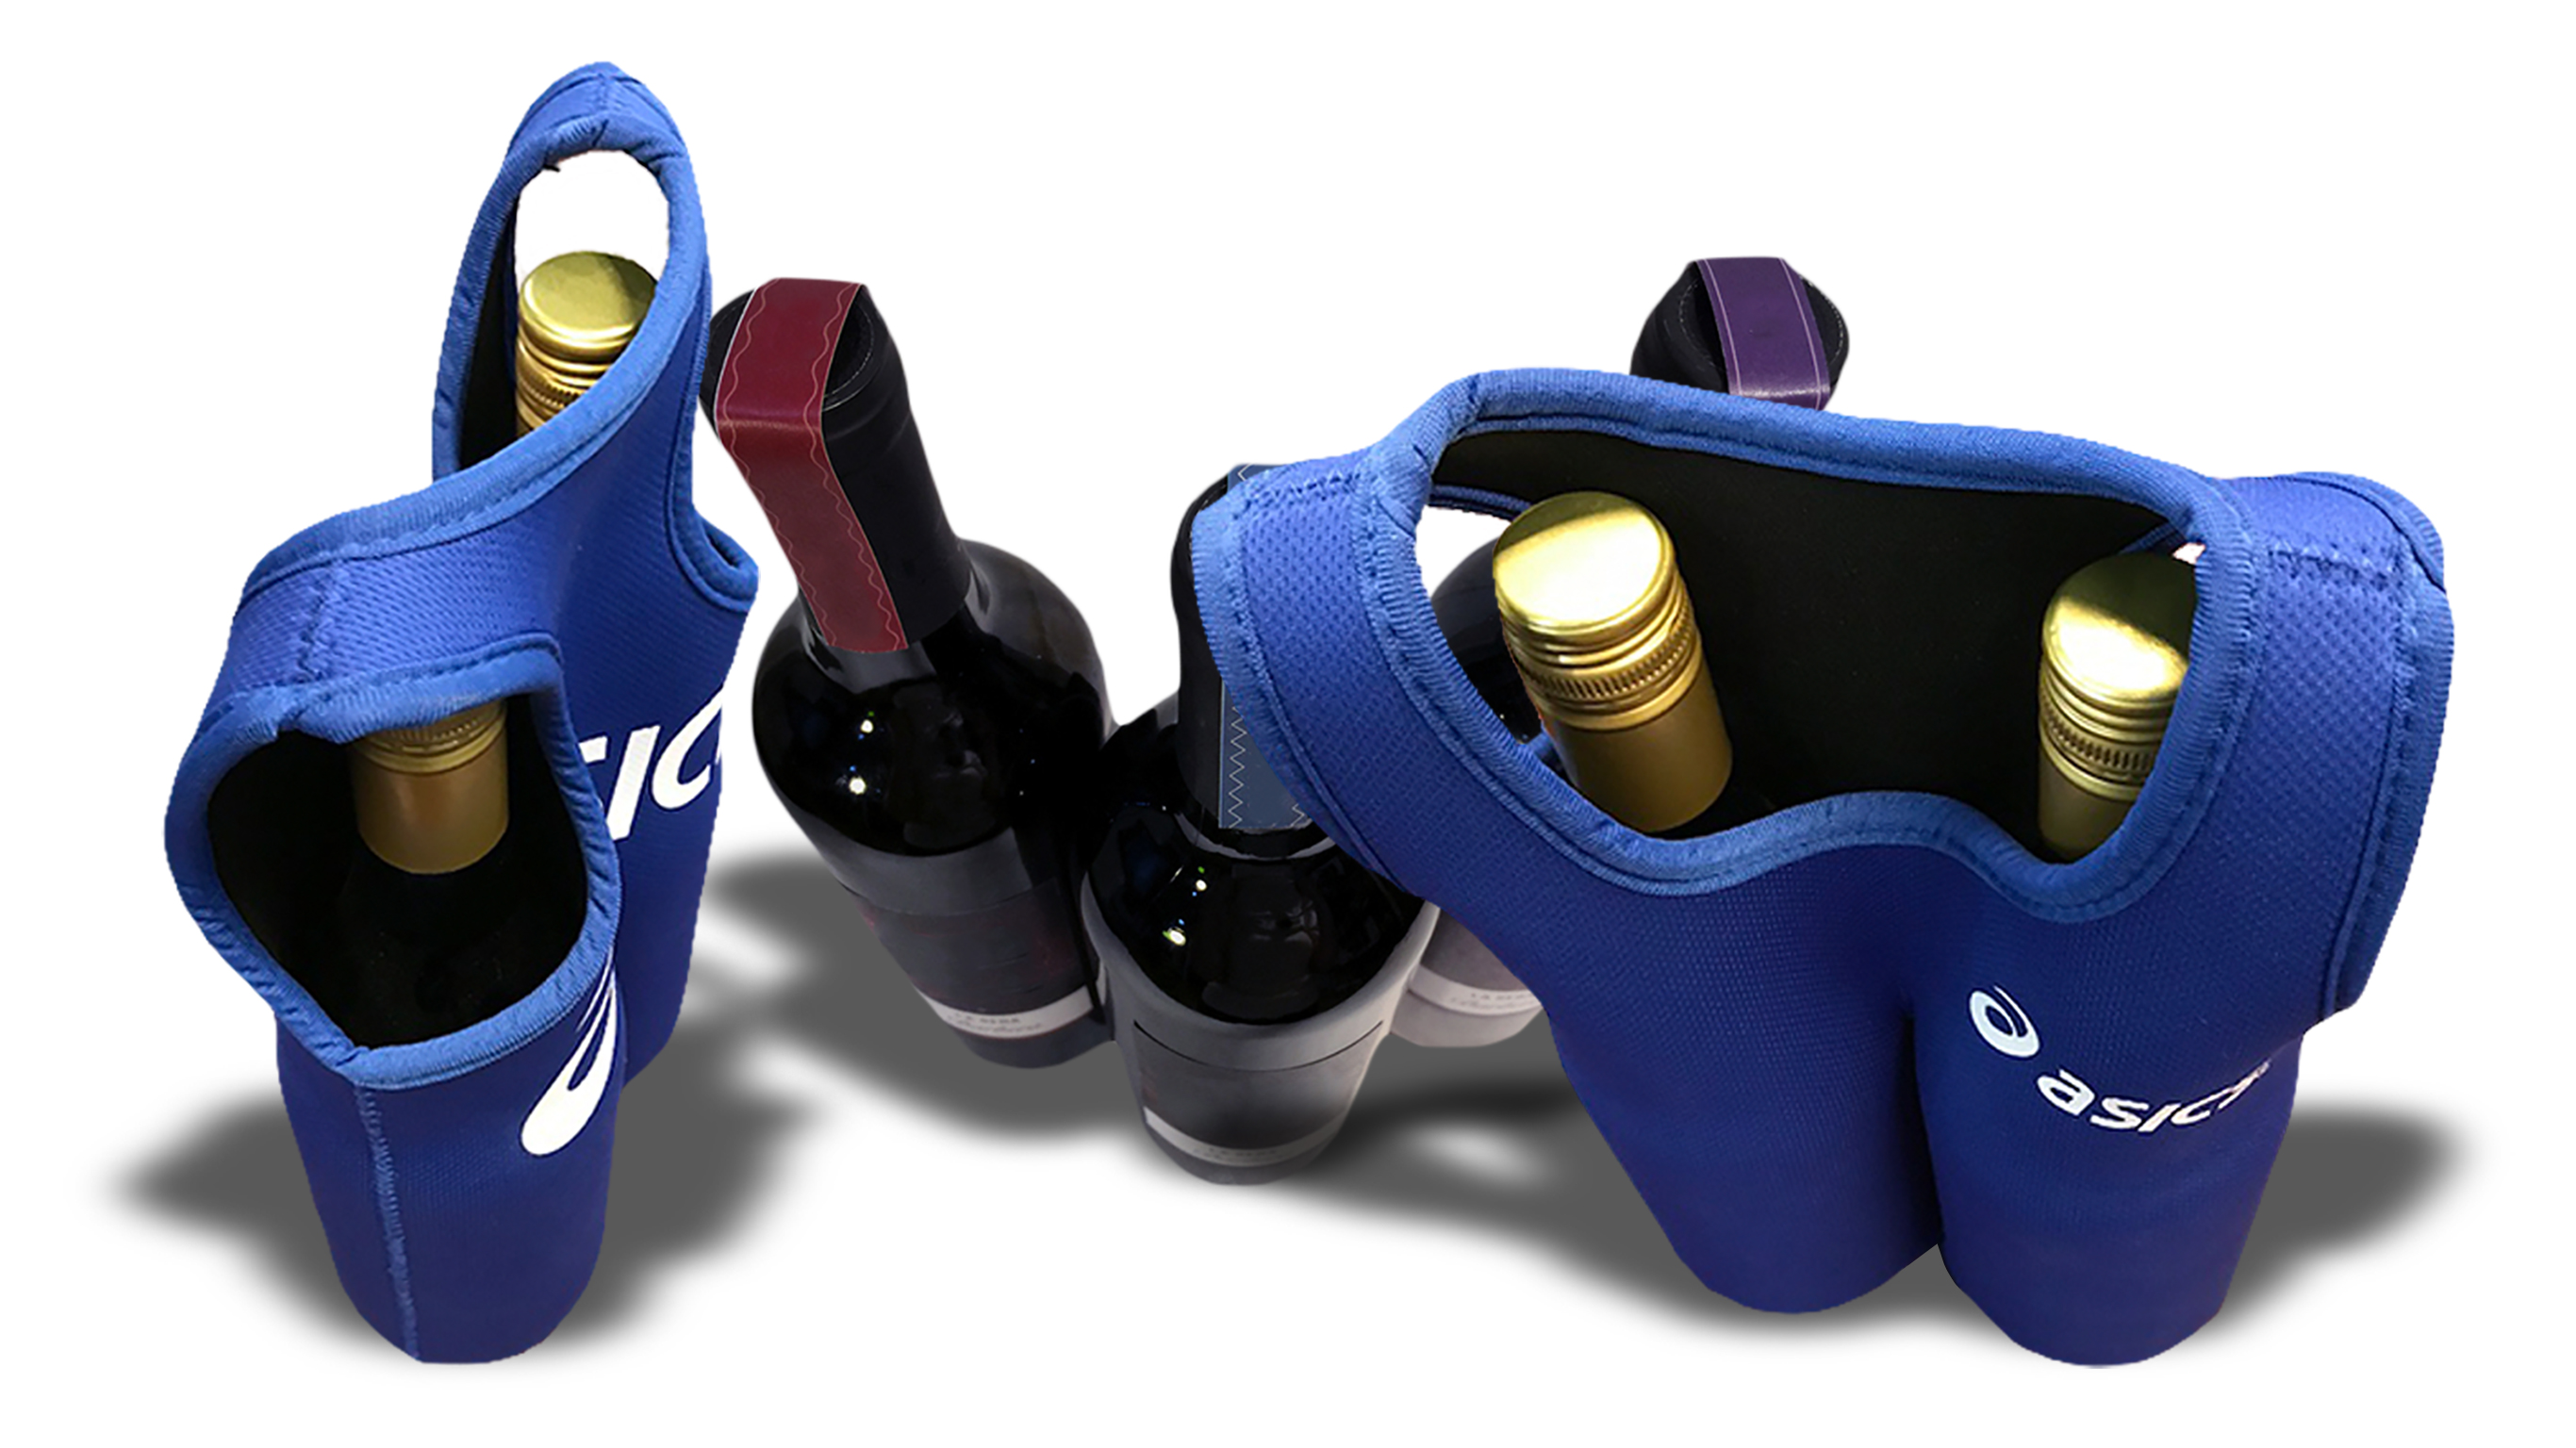 ASICS' Double Wine Carrier